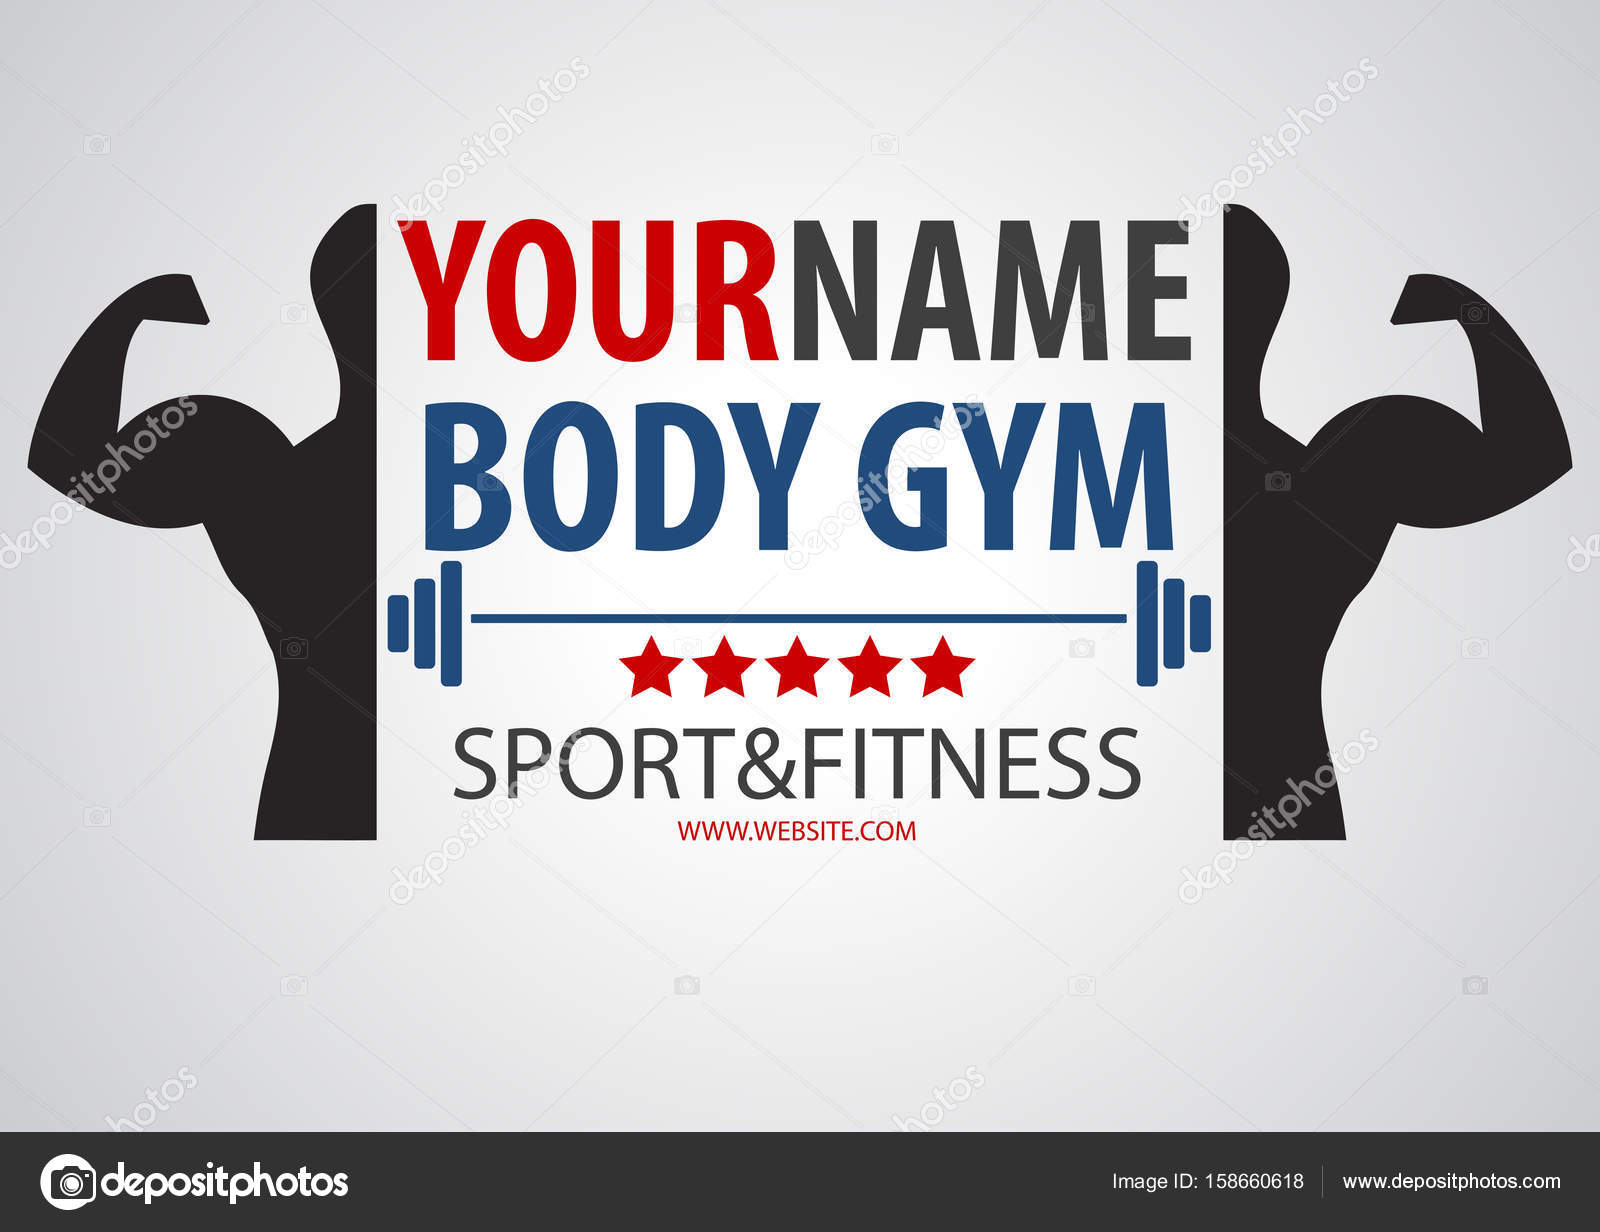 Bodybuilding muscle gym and fitness business logo vector banner ... for Bodybuilding Graphic Design  45ifm